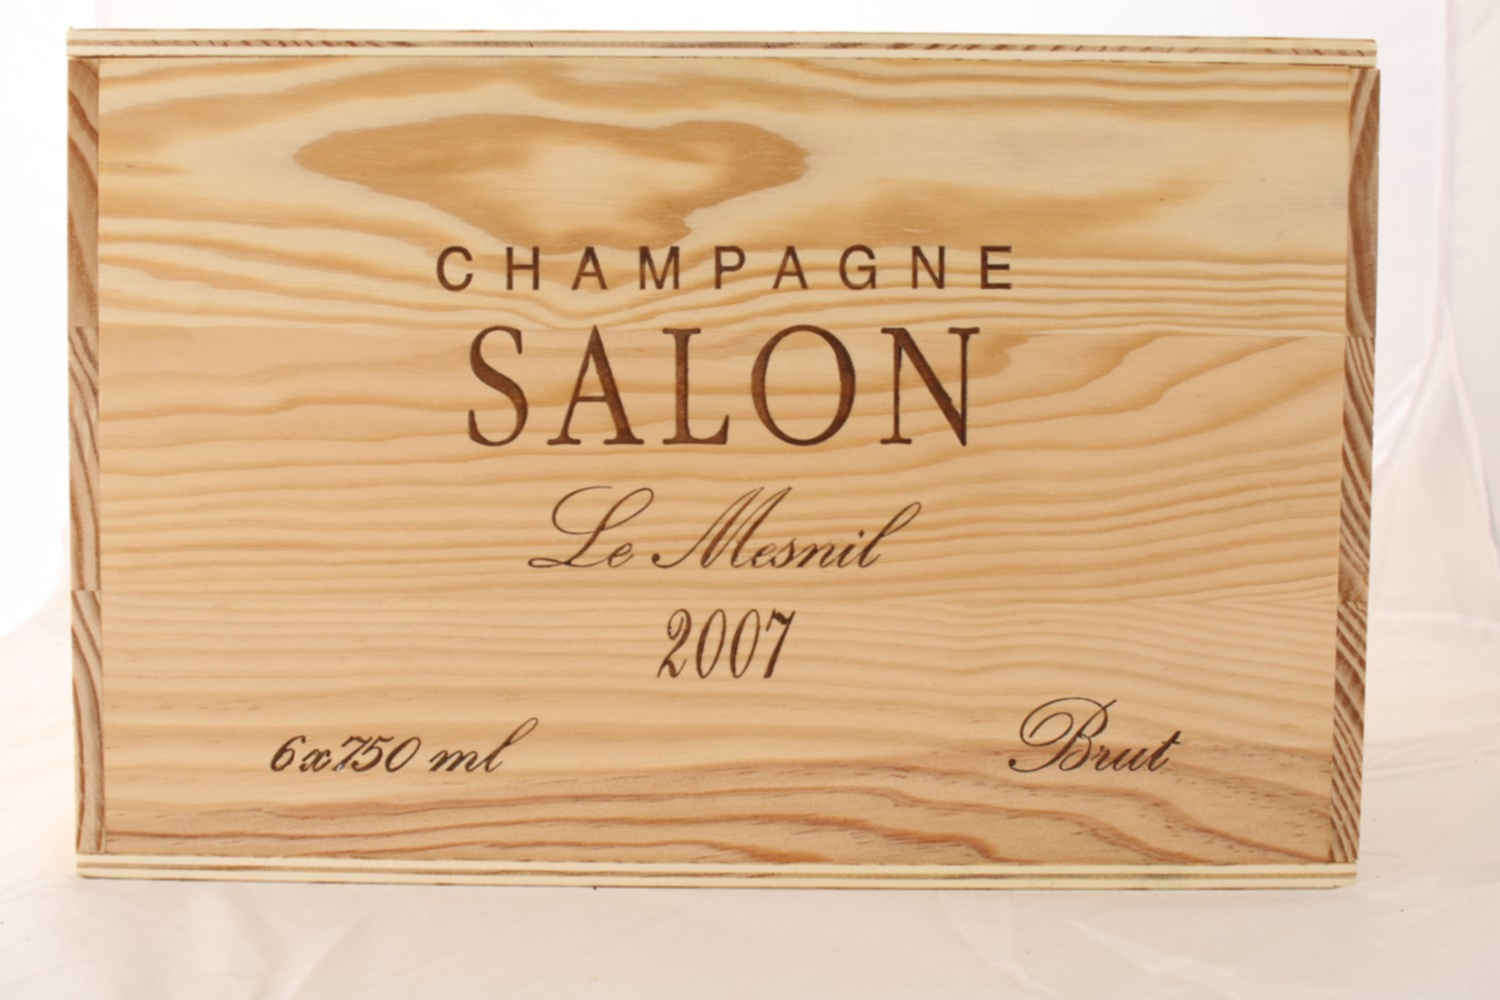 Salon S Le Mesnil 2007